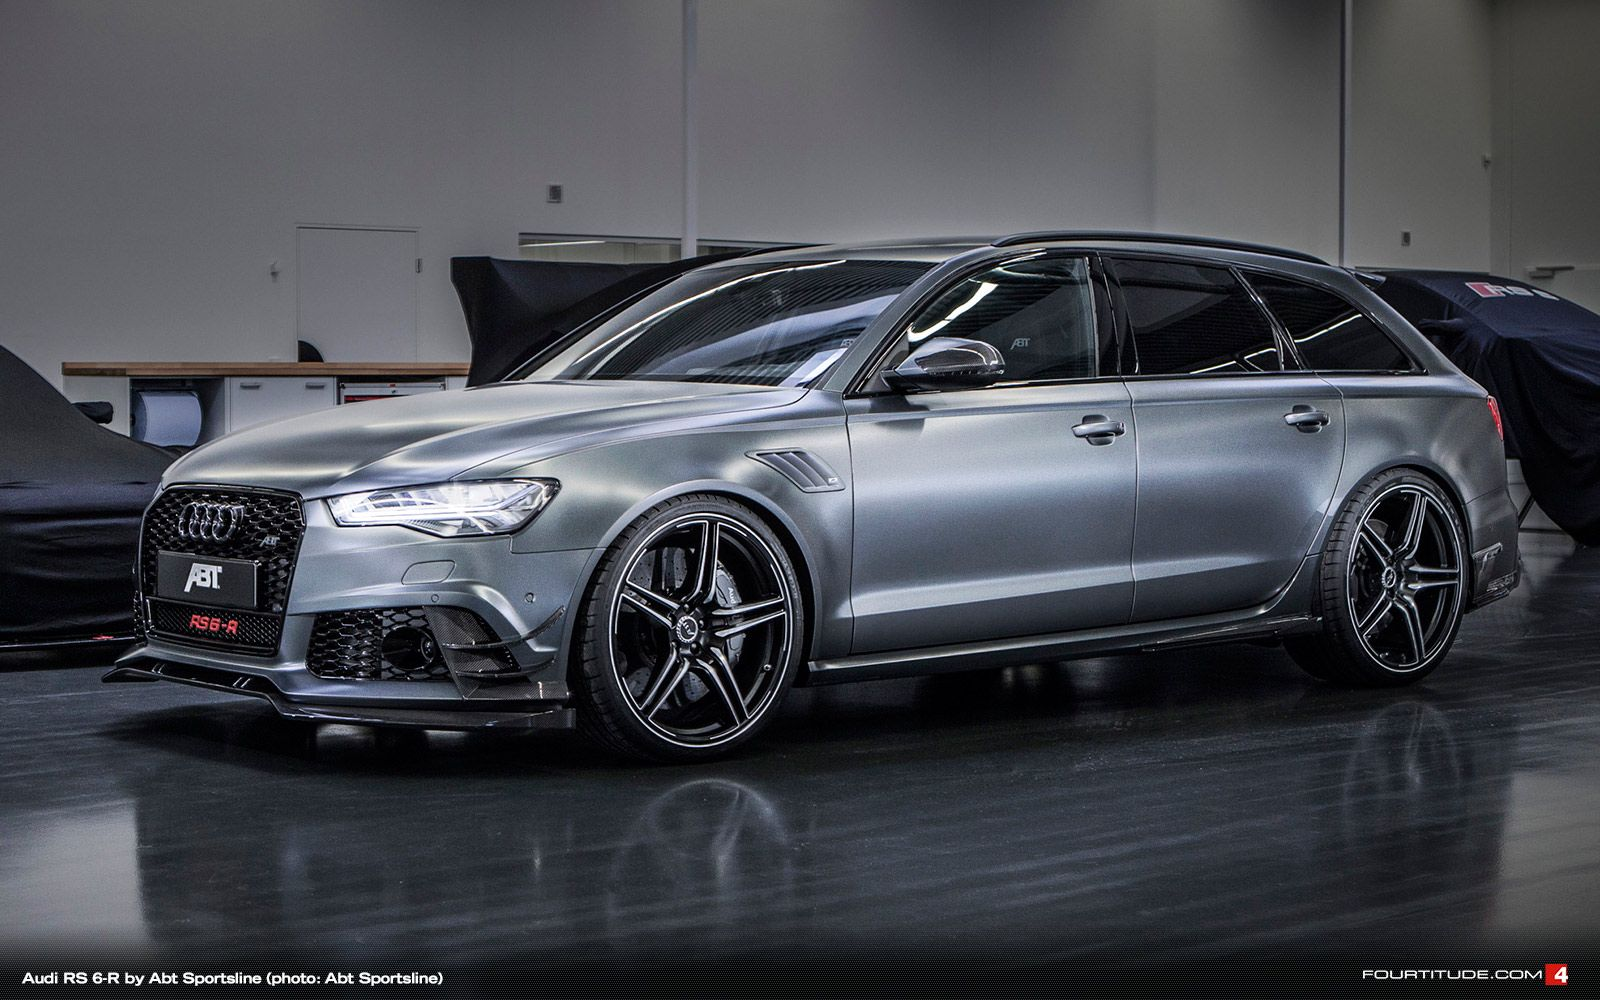 the daytona grey matt paintwork of the abt rs6 r to be shown in geneva says it all with 730. Black Bedroom Furniture Sets. Home Design Ideas